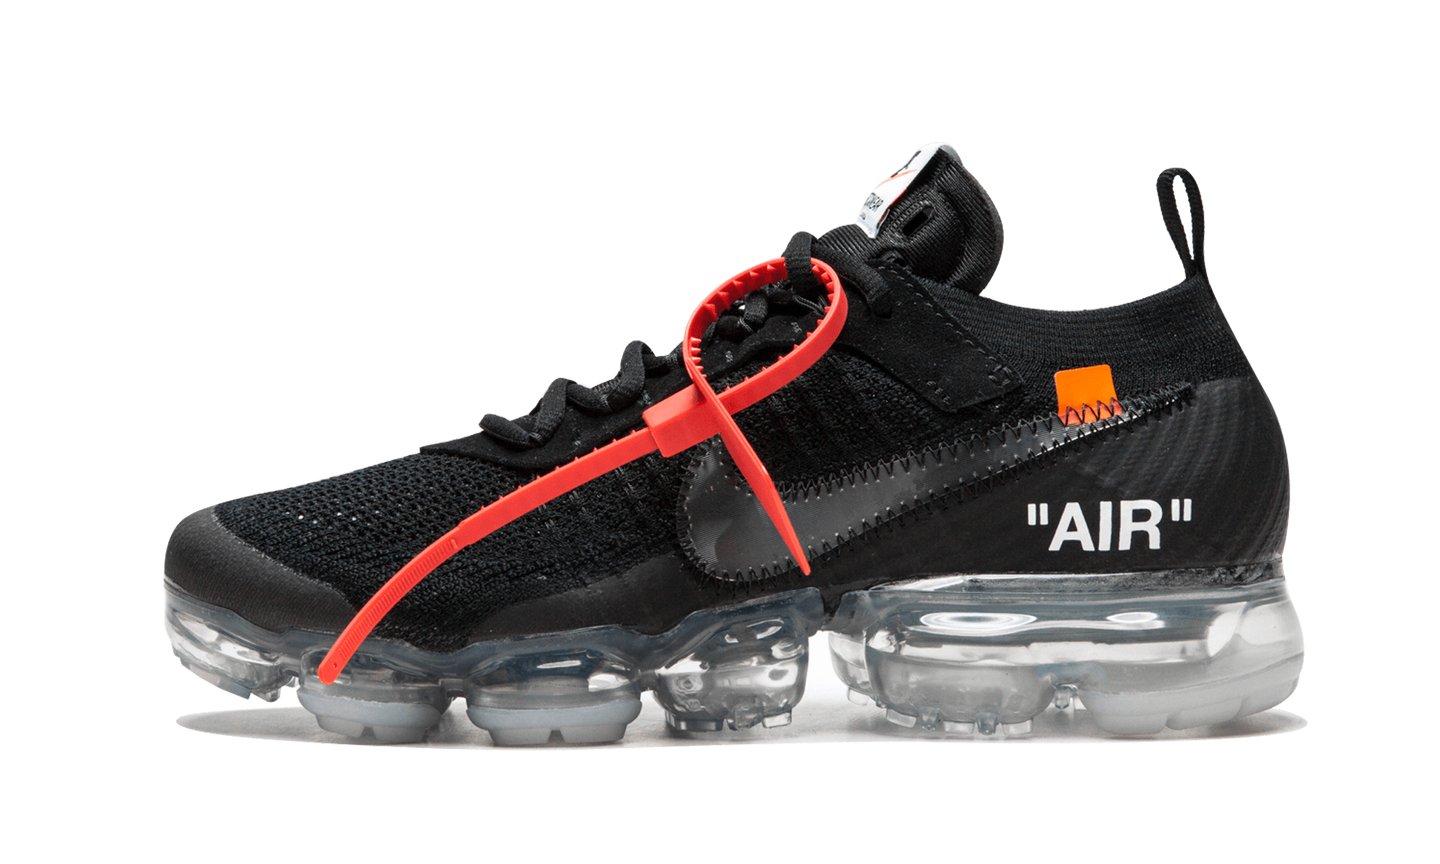 Nike Nike Air Vapor Max 'Off-White Black' - Street Peek